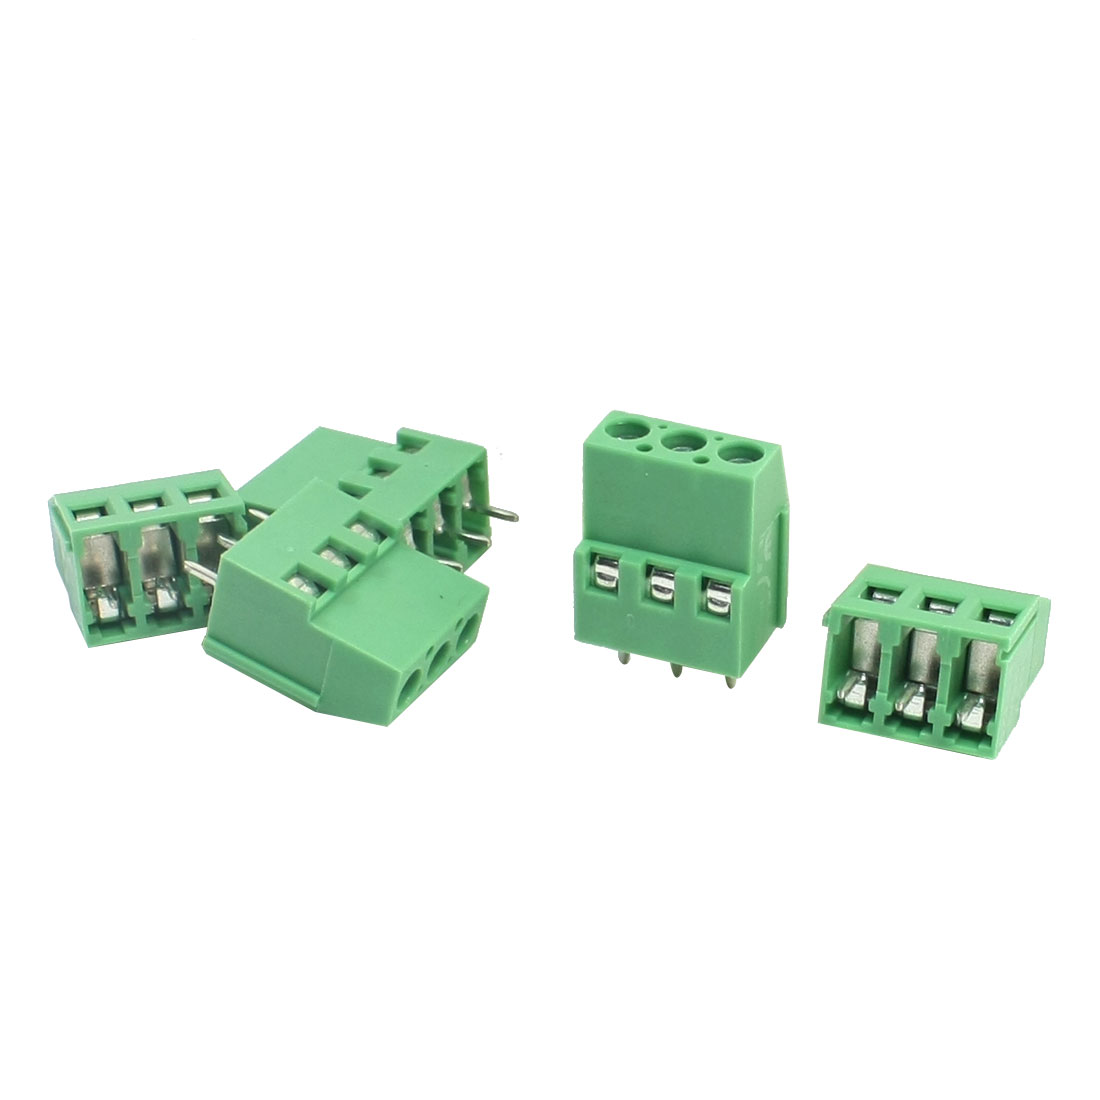 KF129 300V 25A 5mm Through Hole Screw Terminal Barrier Block Connector 5 Pcs